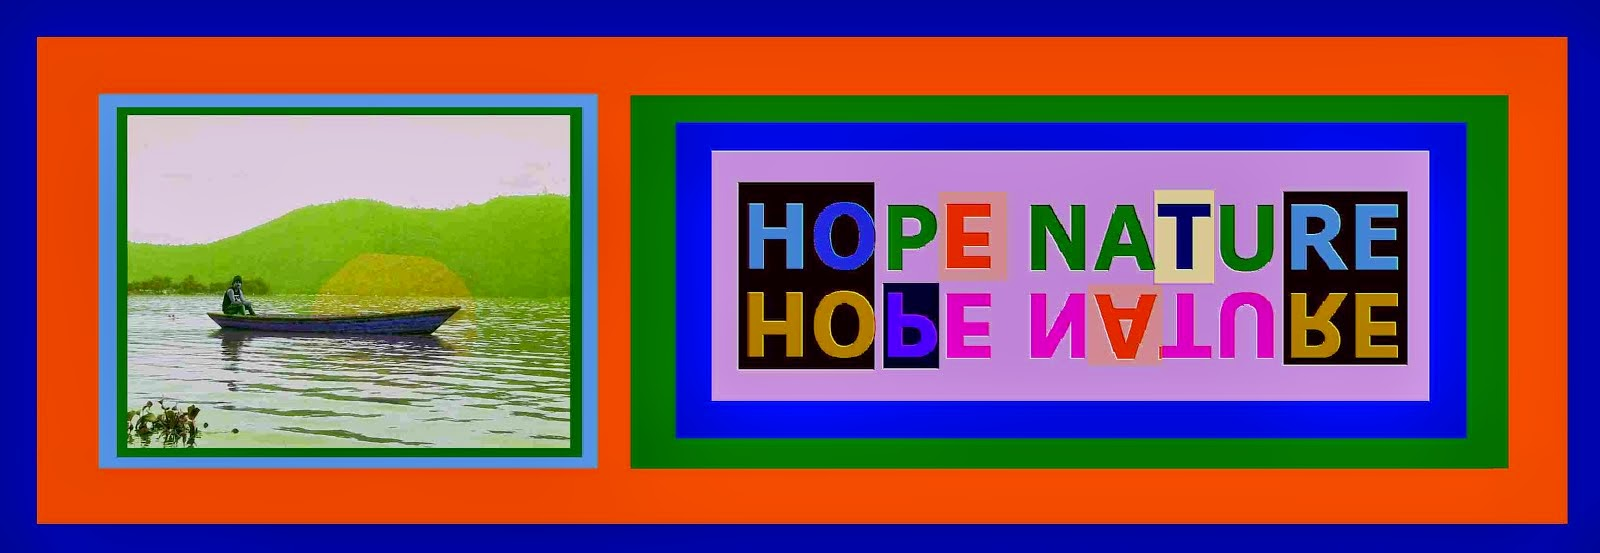 HOPE NATURE 4 human politics umweltverschmutzung journalismus CHINA HOPE tIBET dalai lama vetere